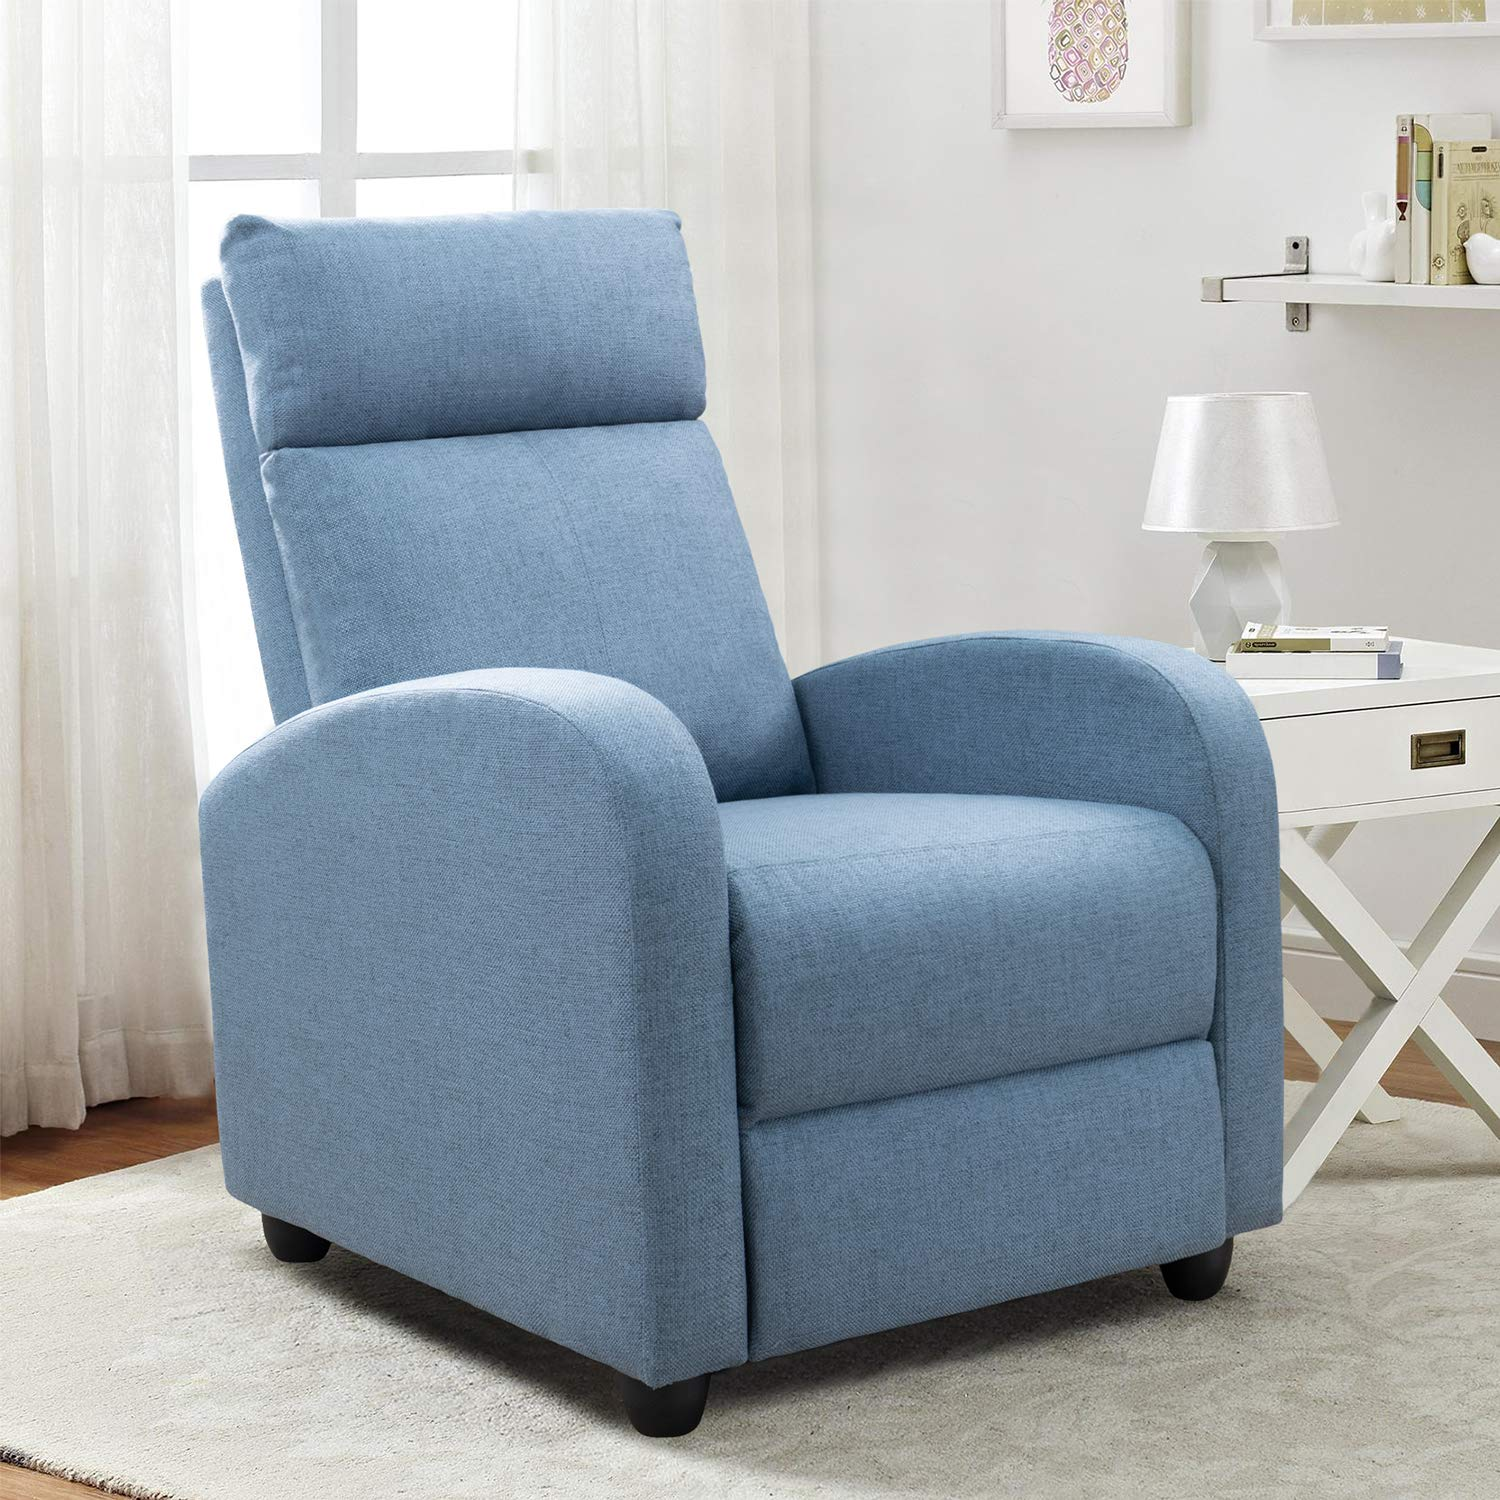 Recliner Sofa Furniture with Thick Seat Cushion and Backrest Modern Living Room Recliners (Light-Blue)